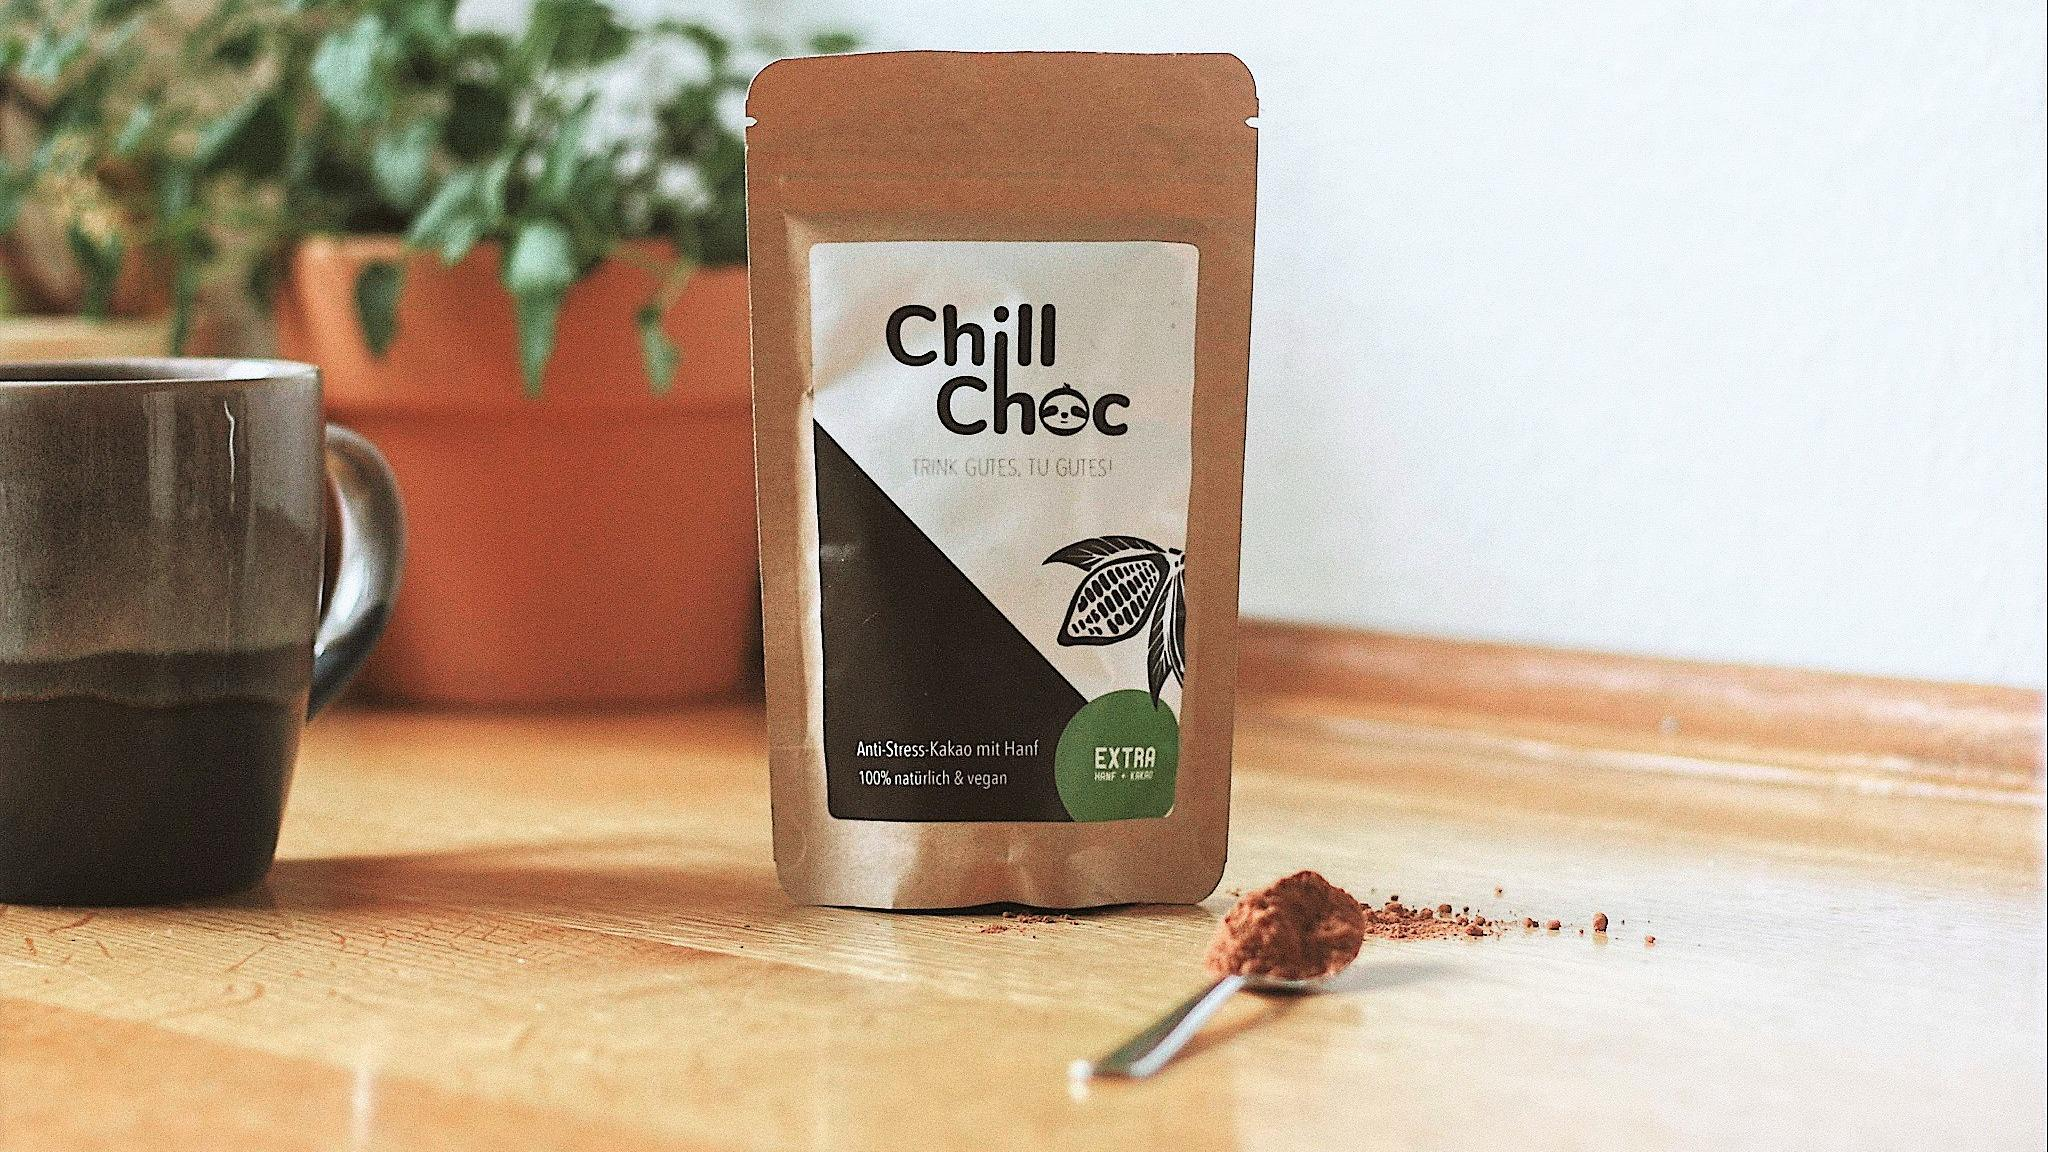 ChillChoc on a table